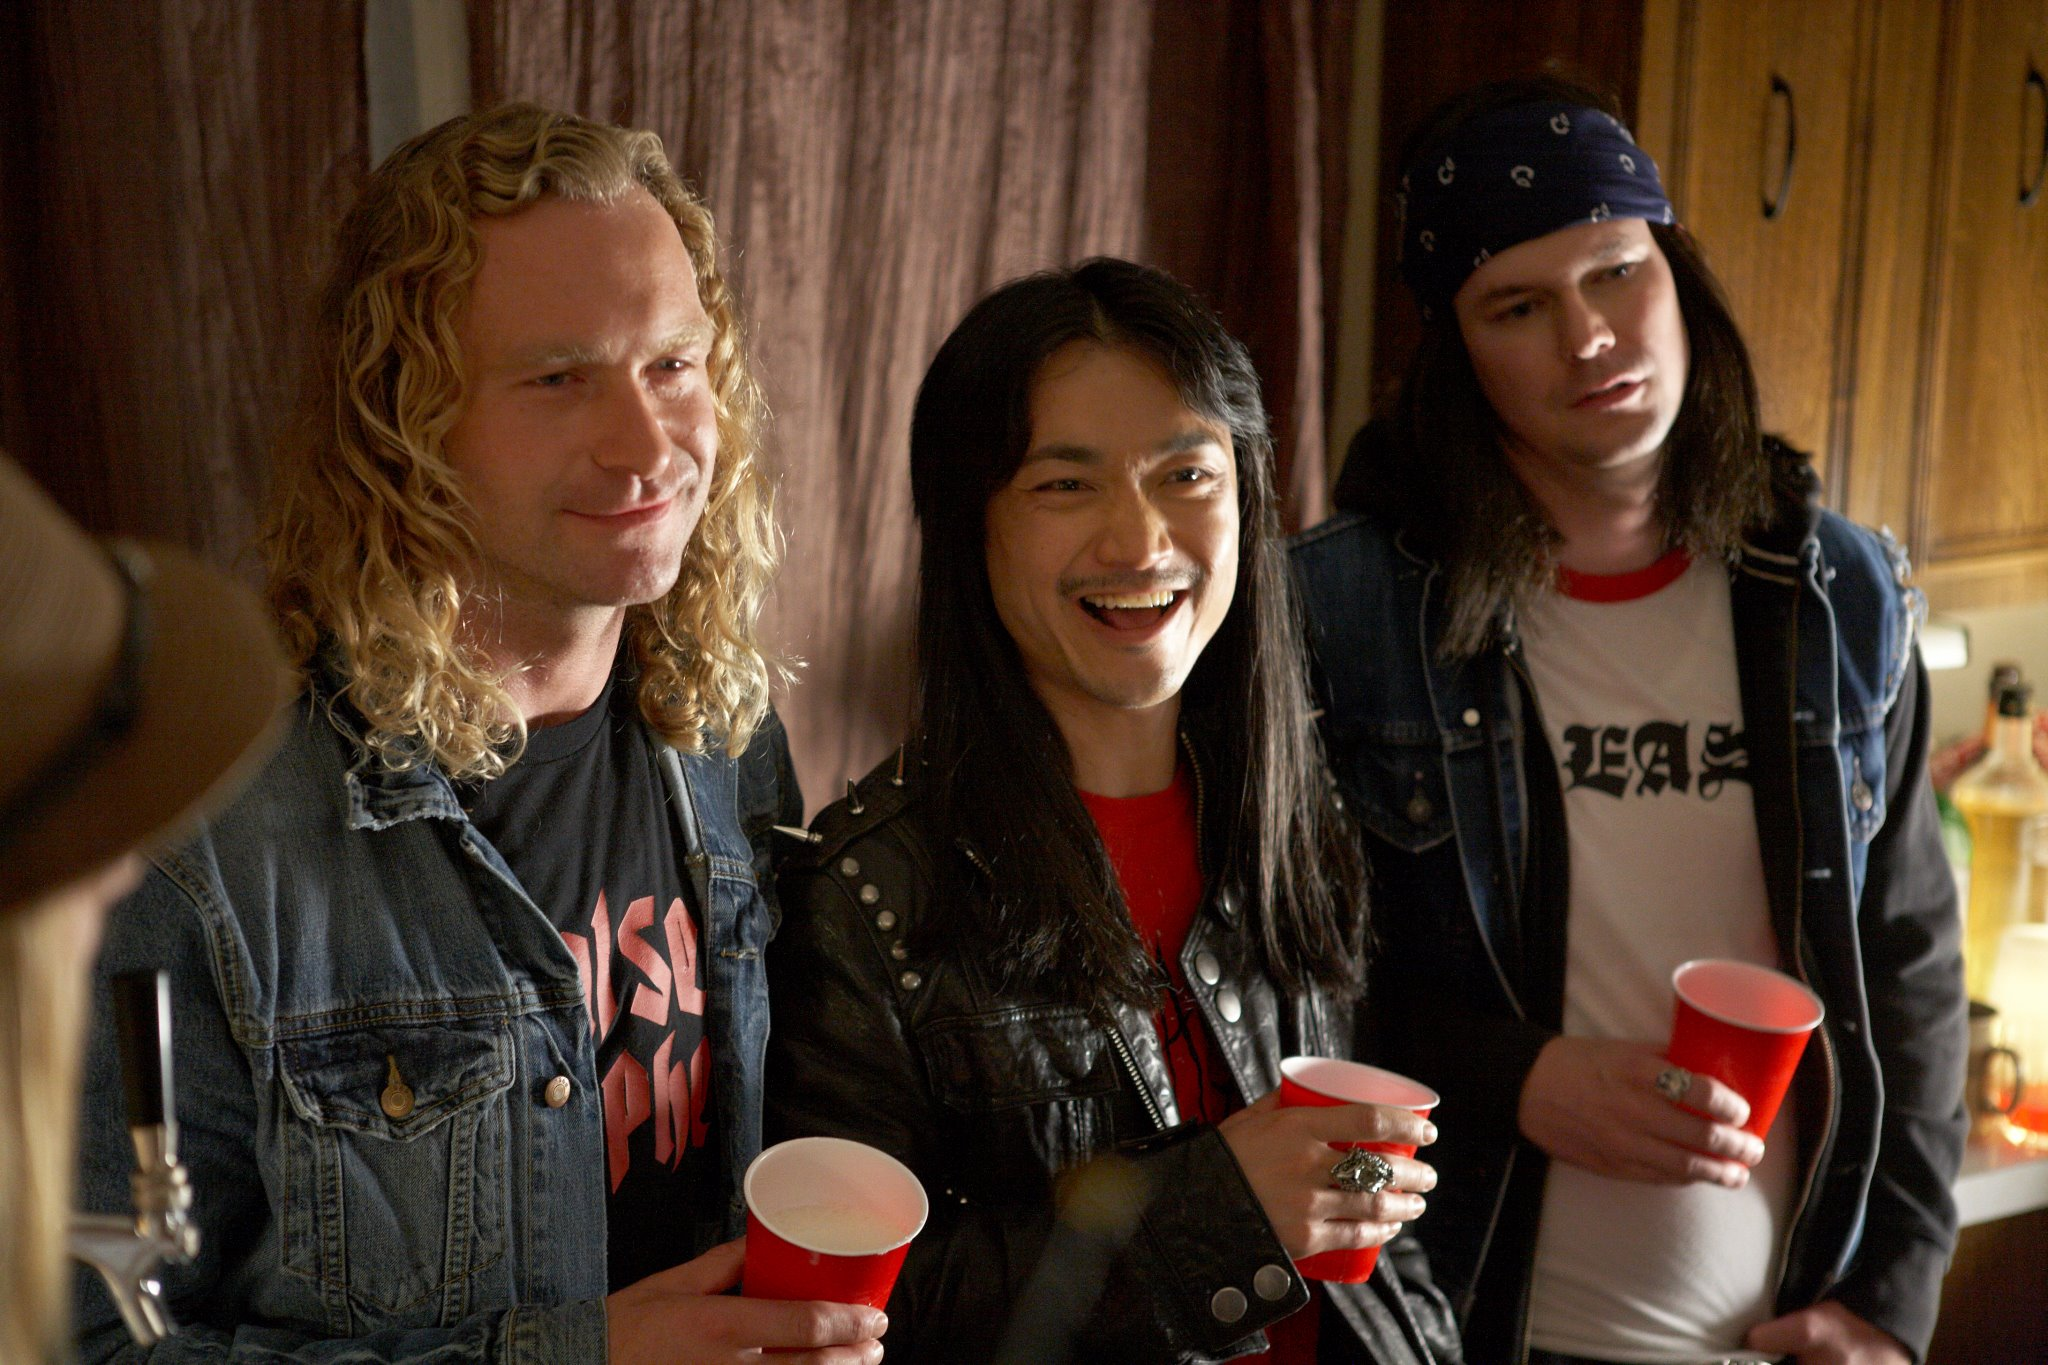 The Metal Dudes: Norman Yeung as Eddie, with Dan Petronijevic and Steve Arbuckle in TODD AND THE BOOK OF PURE EVIL